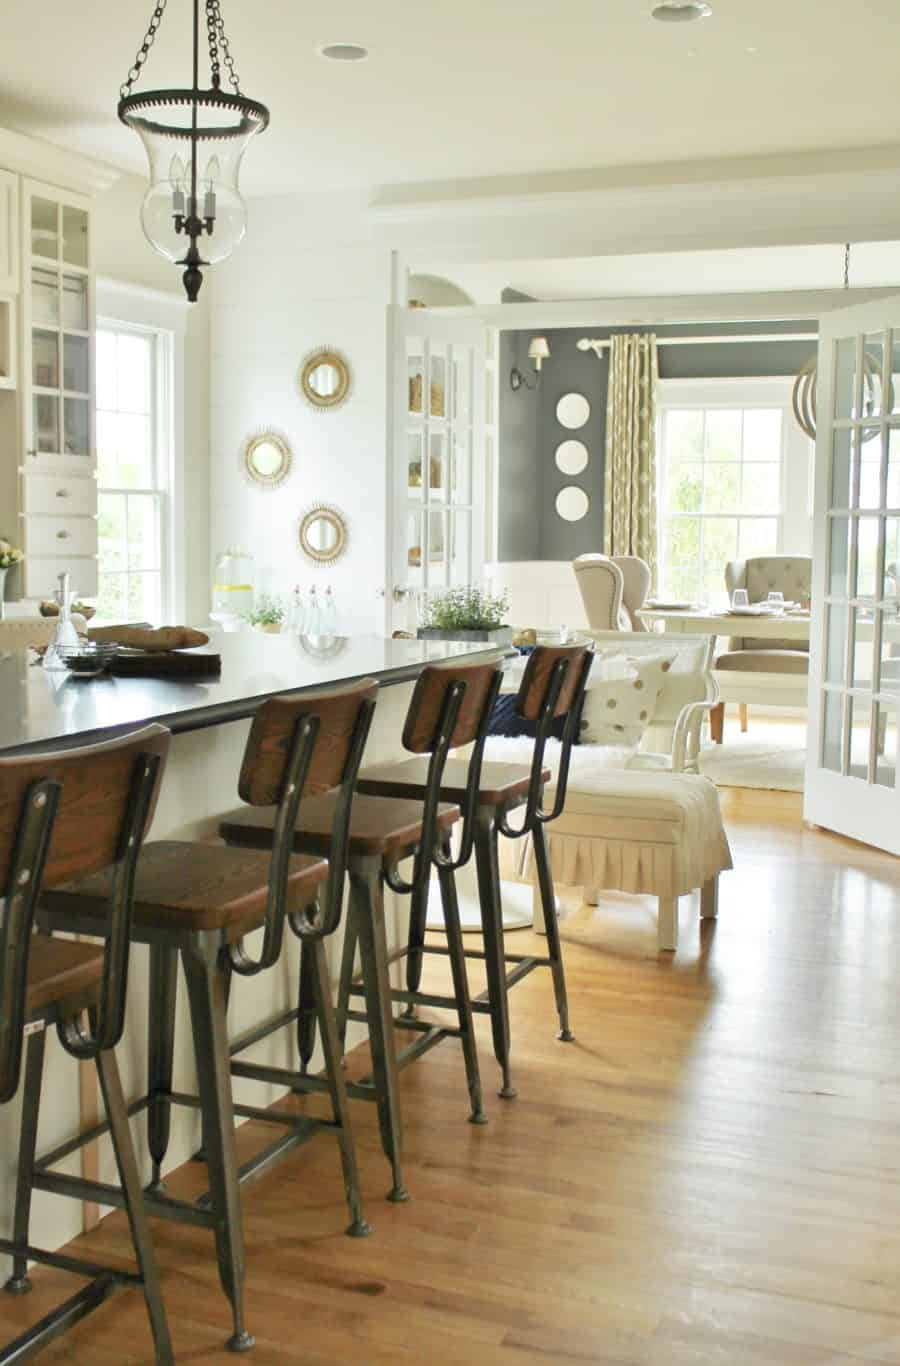 Neutral colors for farmhouse design